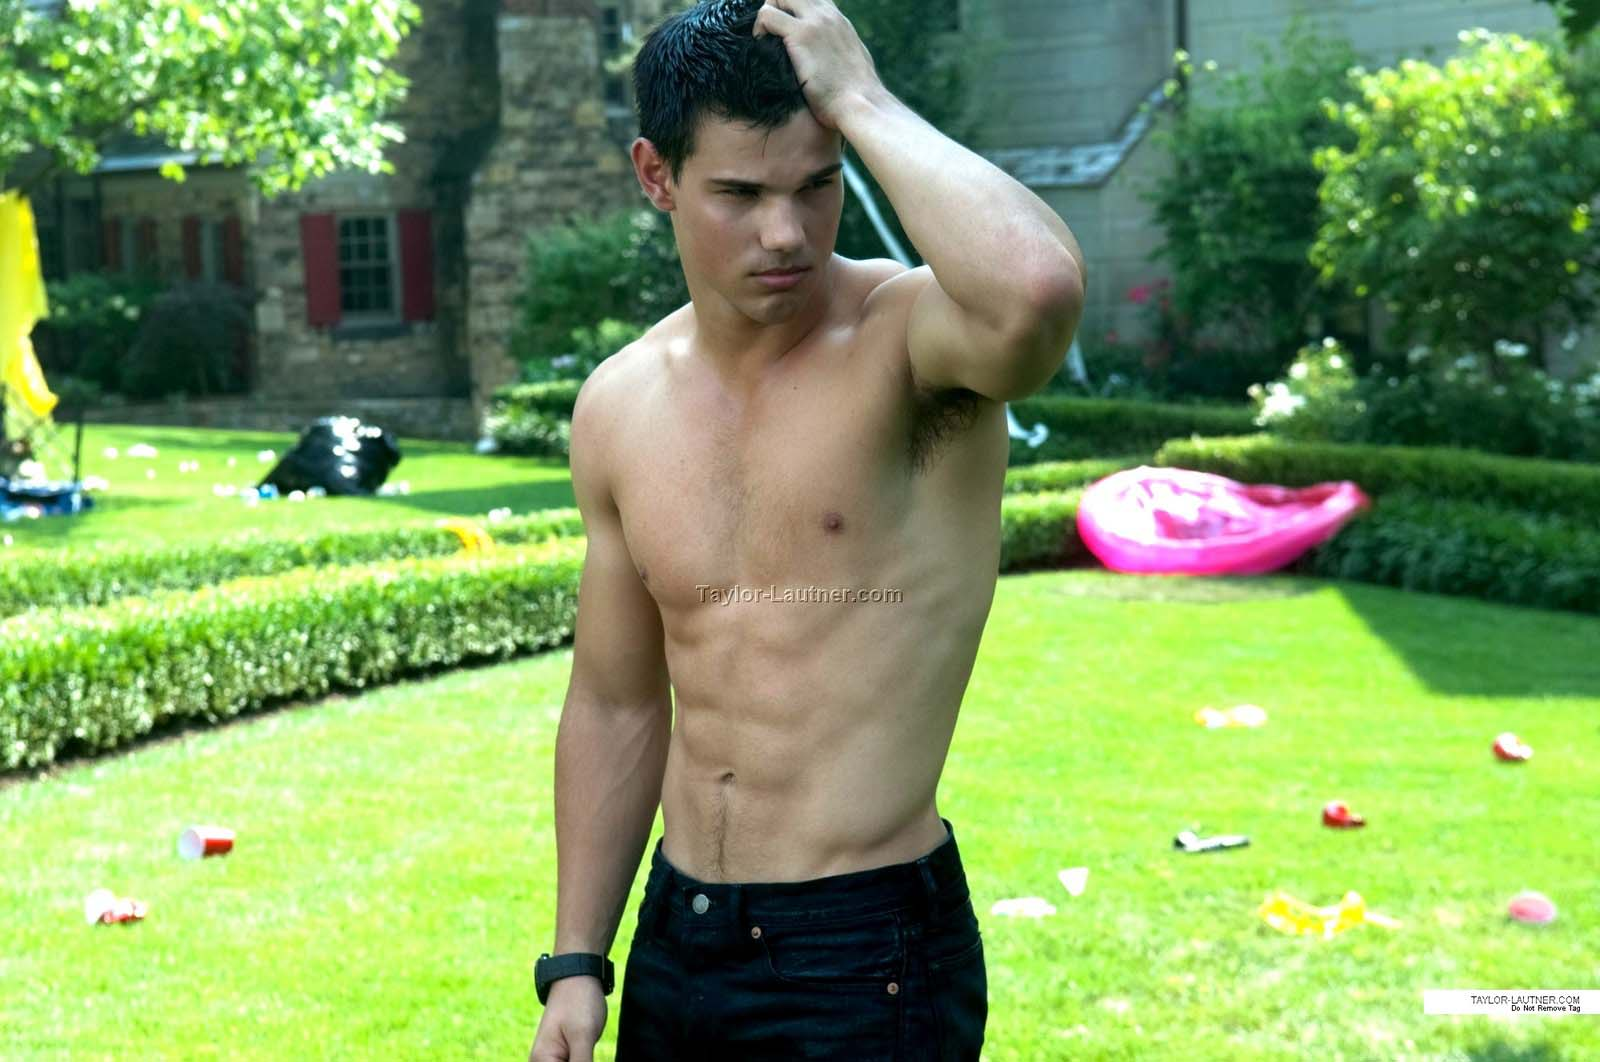 http://4.bp.blogspot.com/-Cr3MKv1V2K0/ToB9XWIWWlI/AAAAAAAACbg/nbHQC6XeNzQ/s1600/abduction_lautner_shirtless.jpg